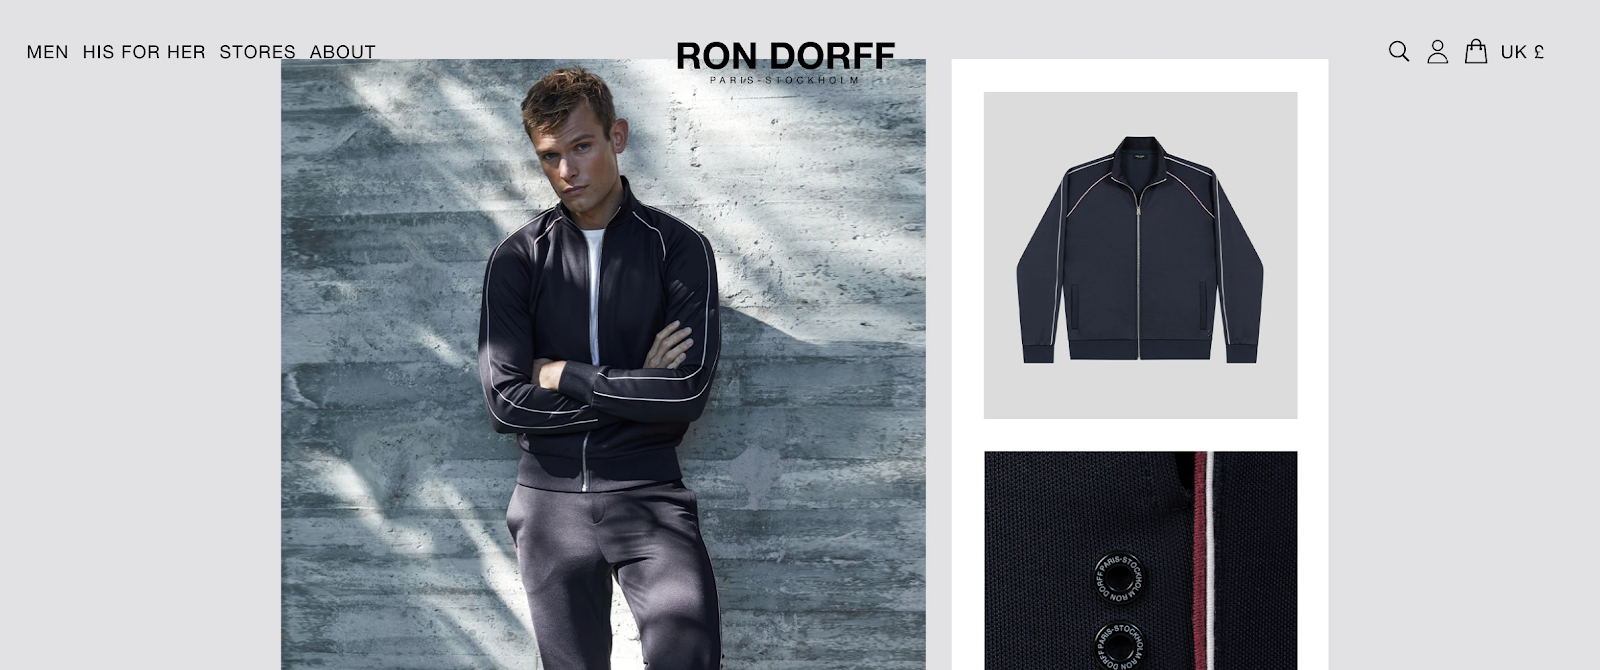 Ron Dorff homepage with website localization